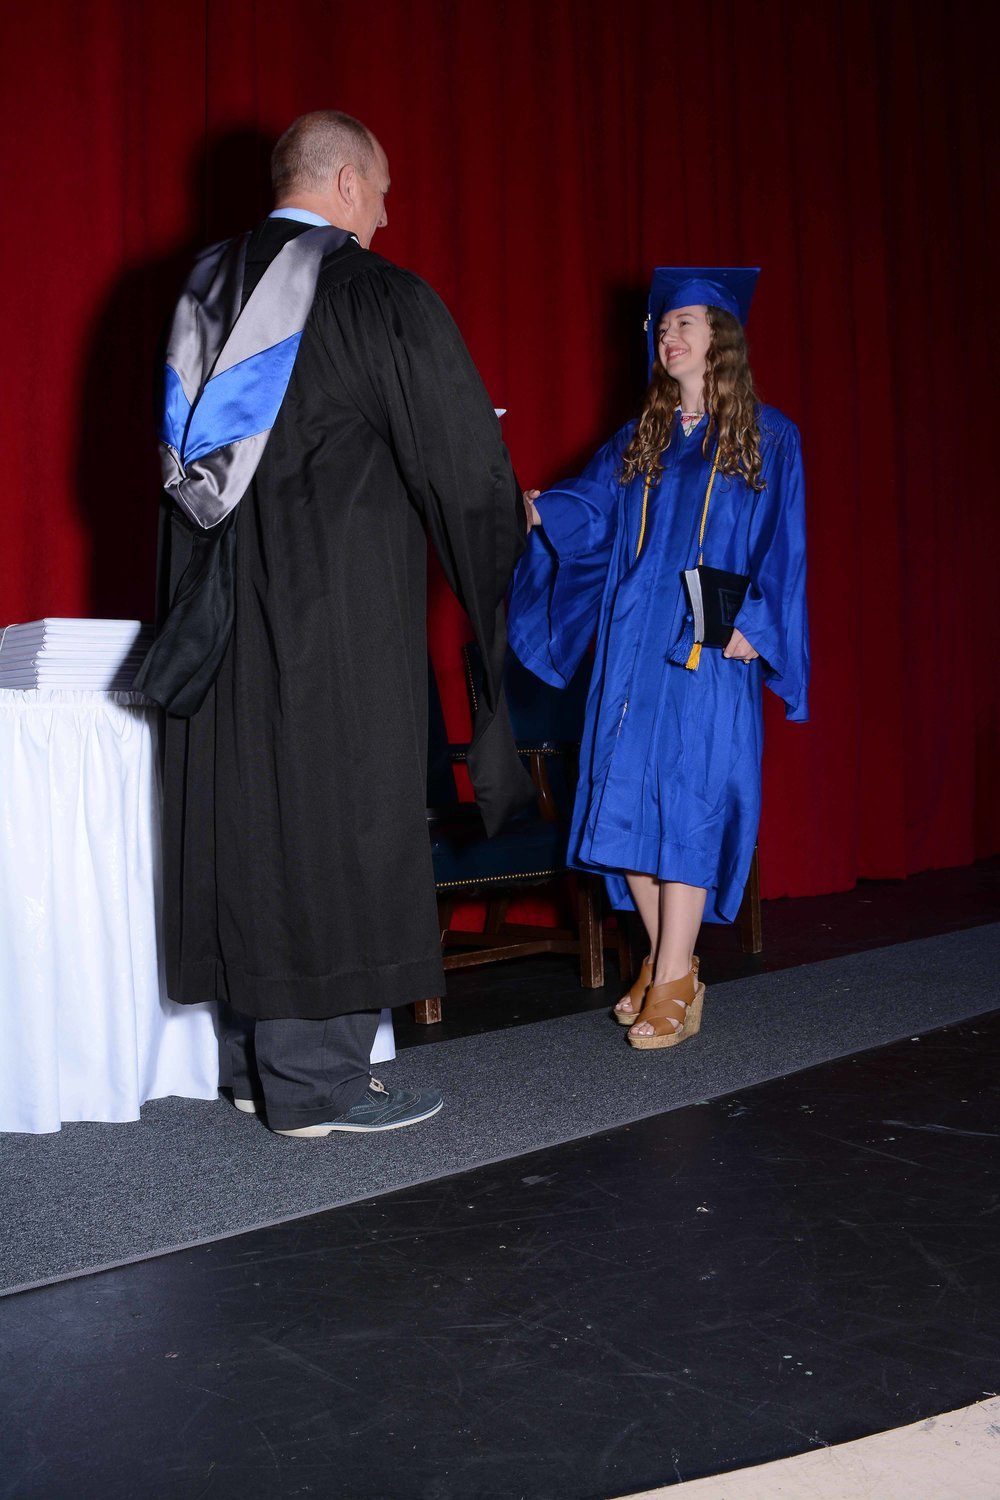 May14 Commencement55.jpg